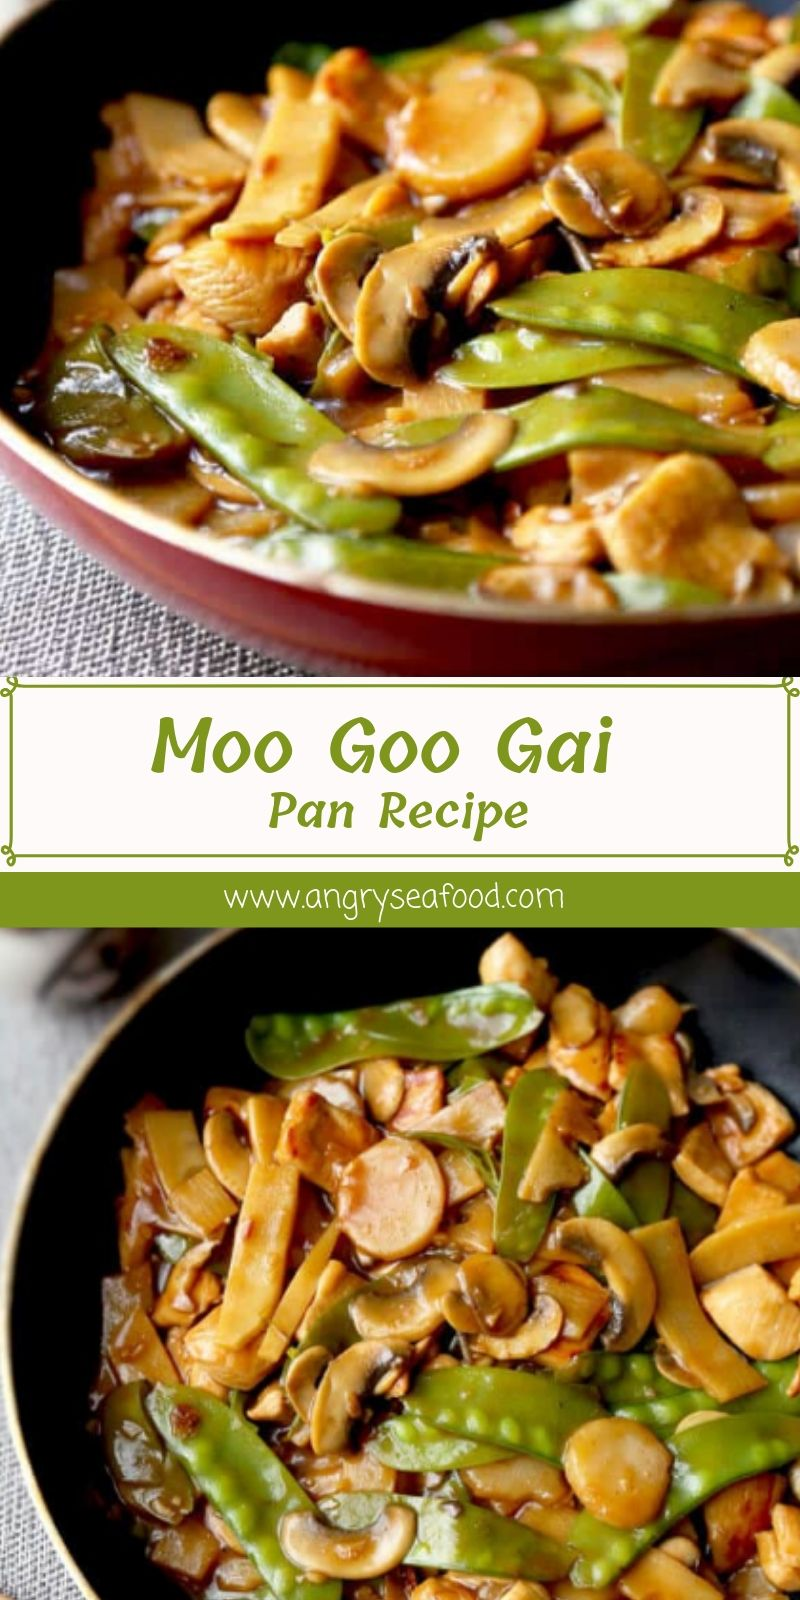 https://pickledplum.com/moo-goo-gai-pan-recipe/